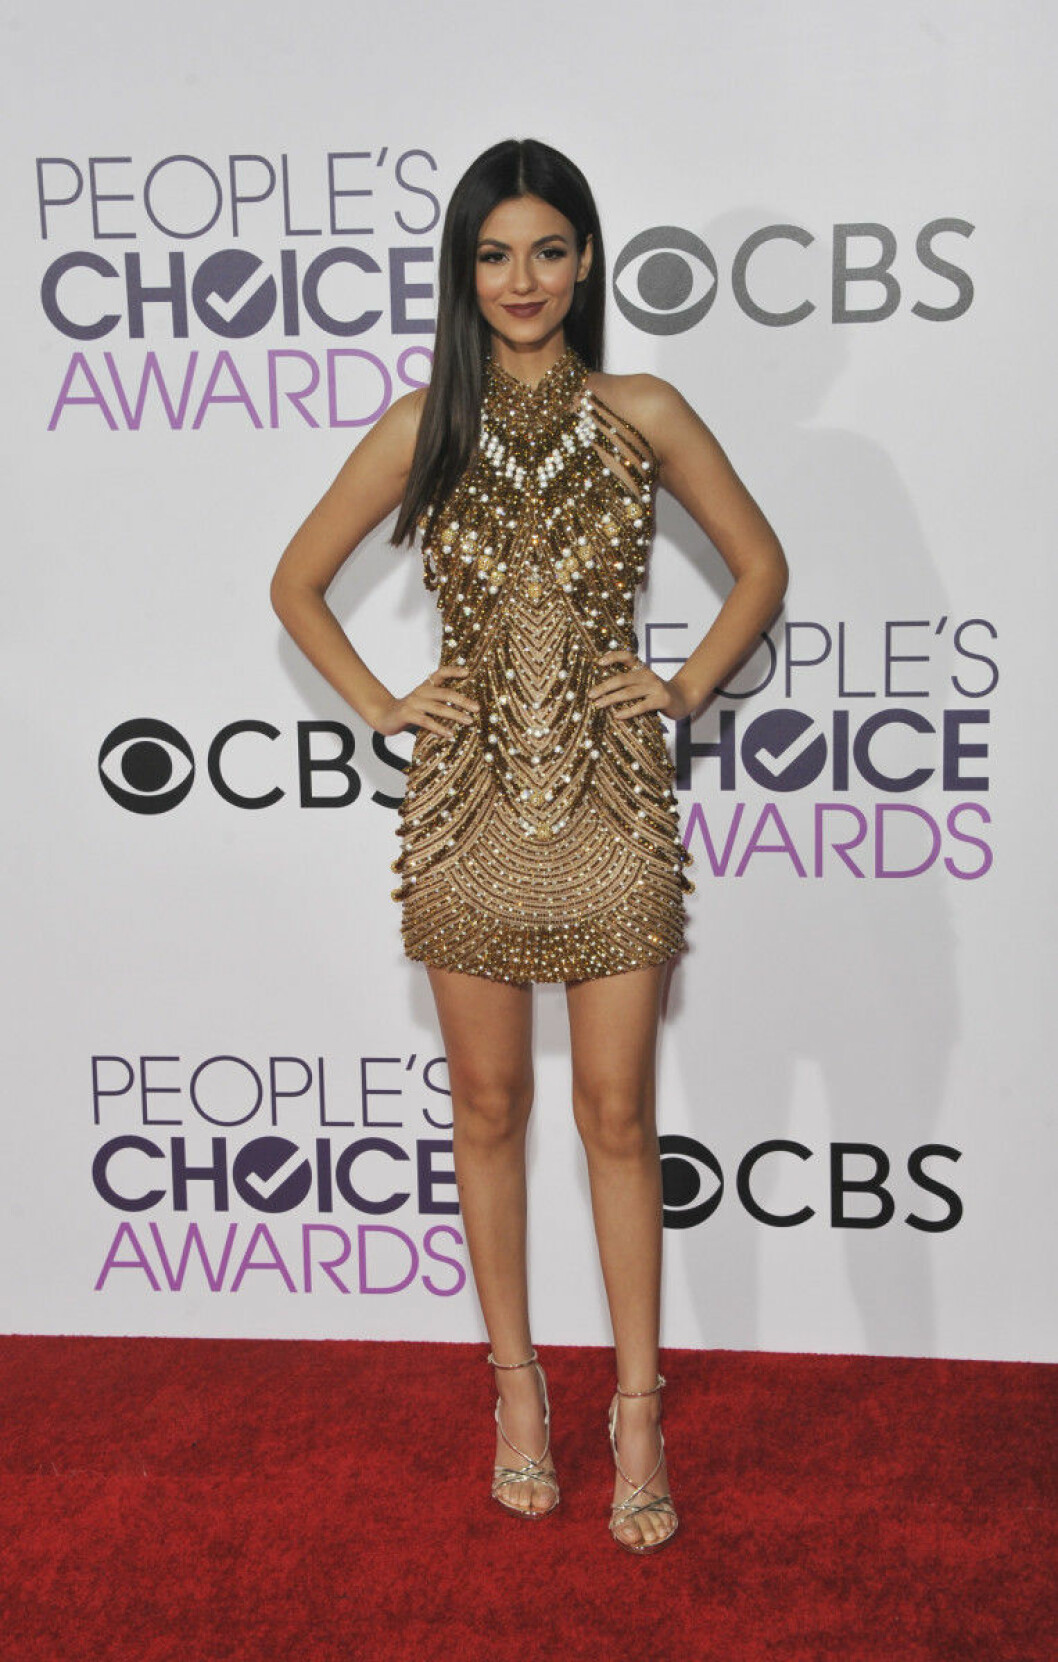 People's Choice Awards 2017 arrivals Featuring: Victoria Justice Where: Los Angeles, California, United States When: 19 Jan 2017 Credit: Apega/WENN.com